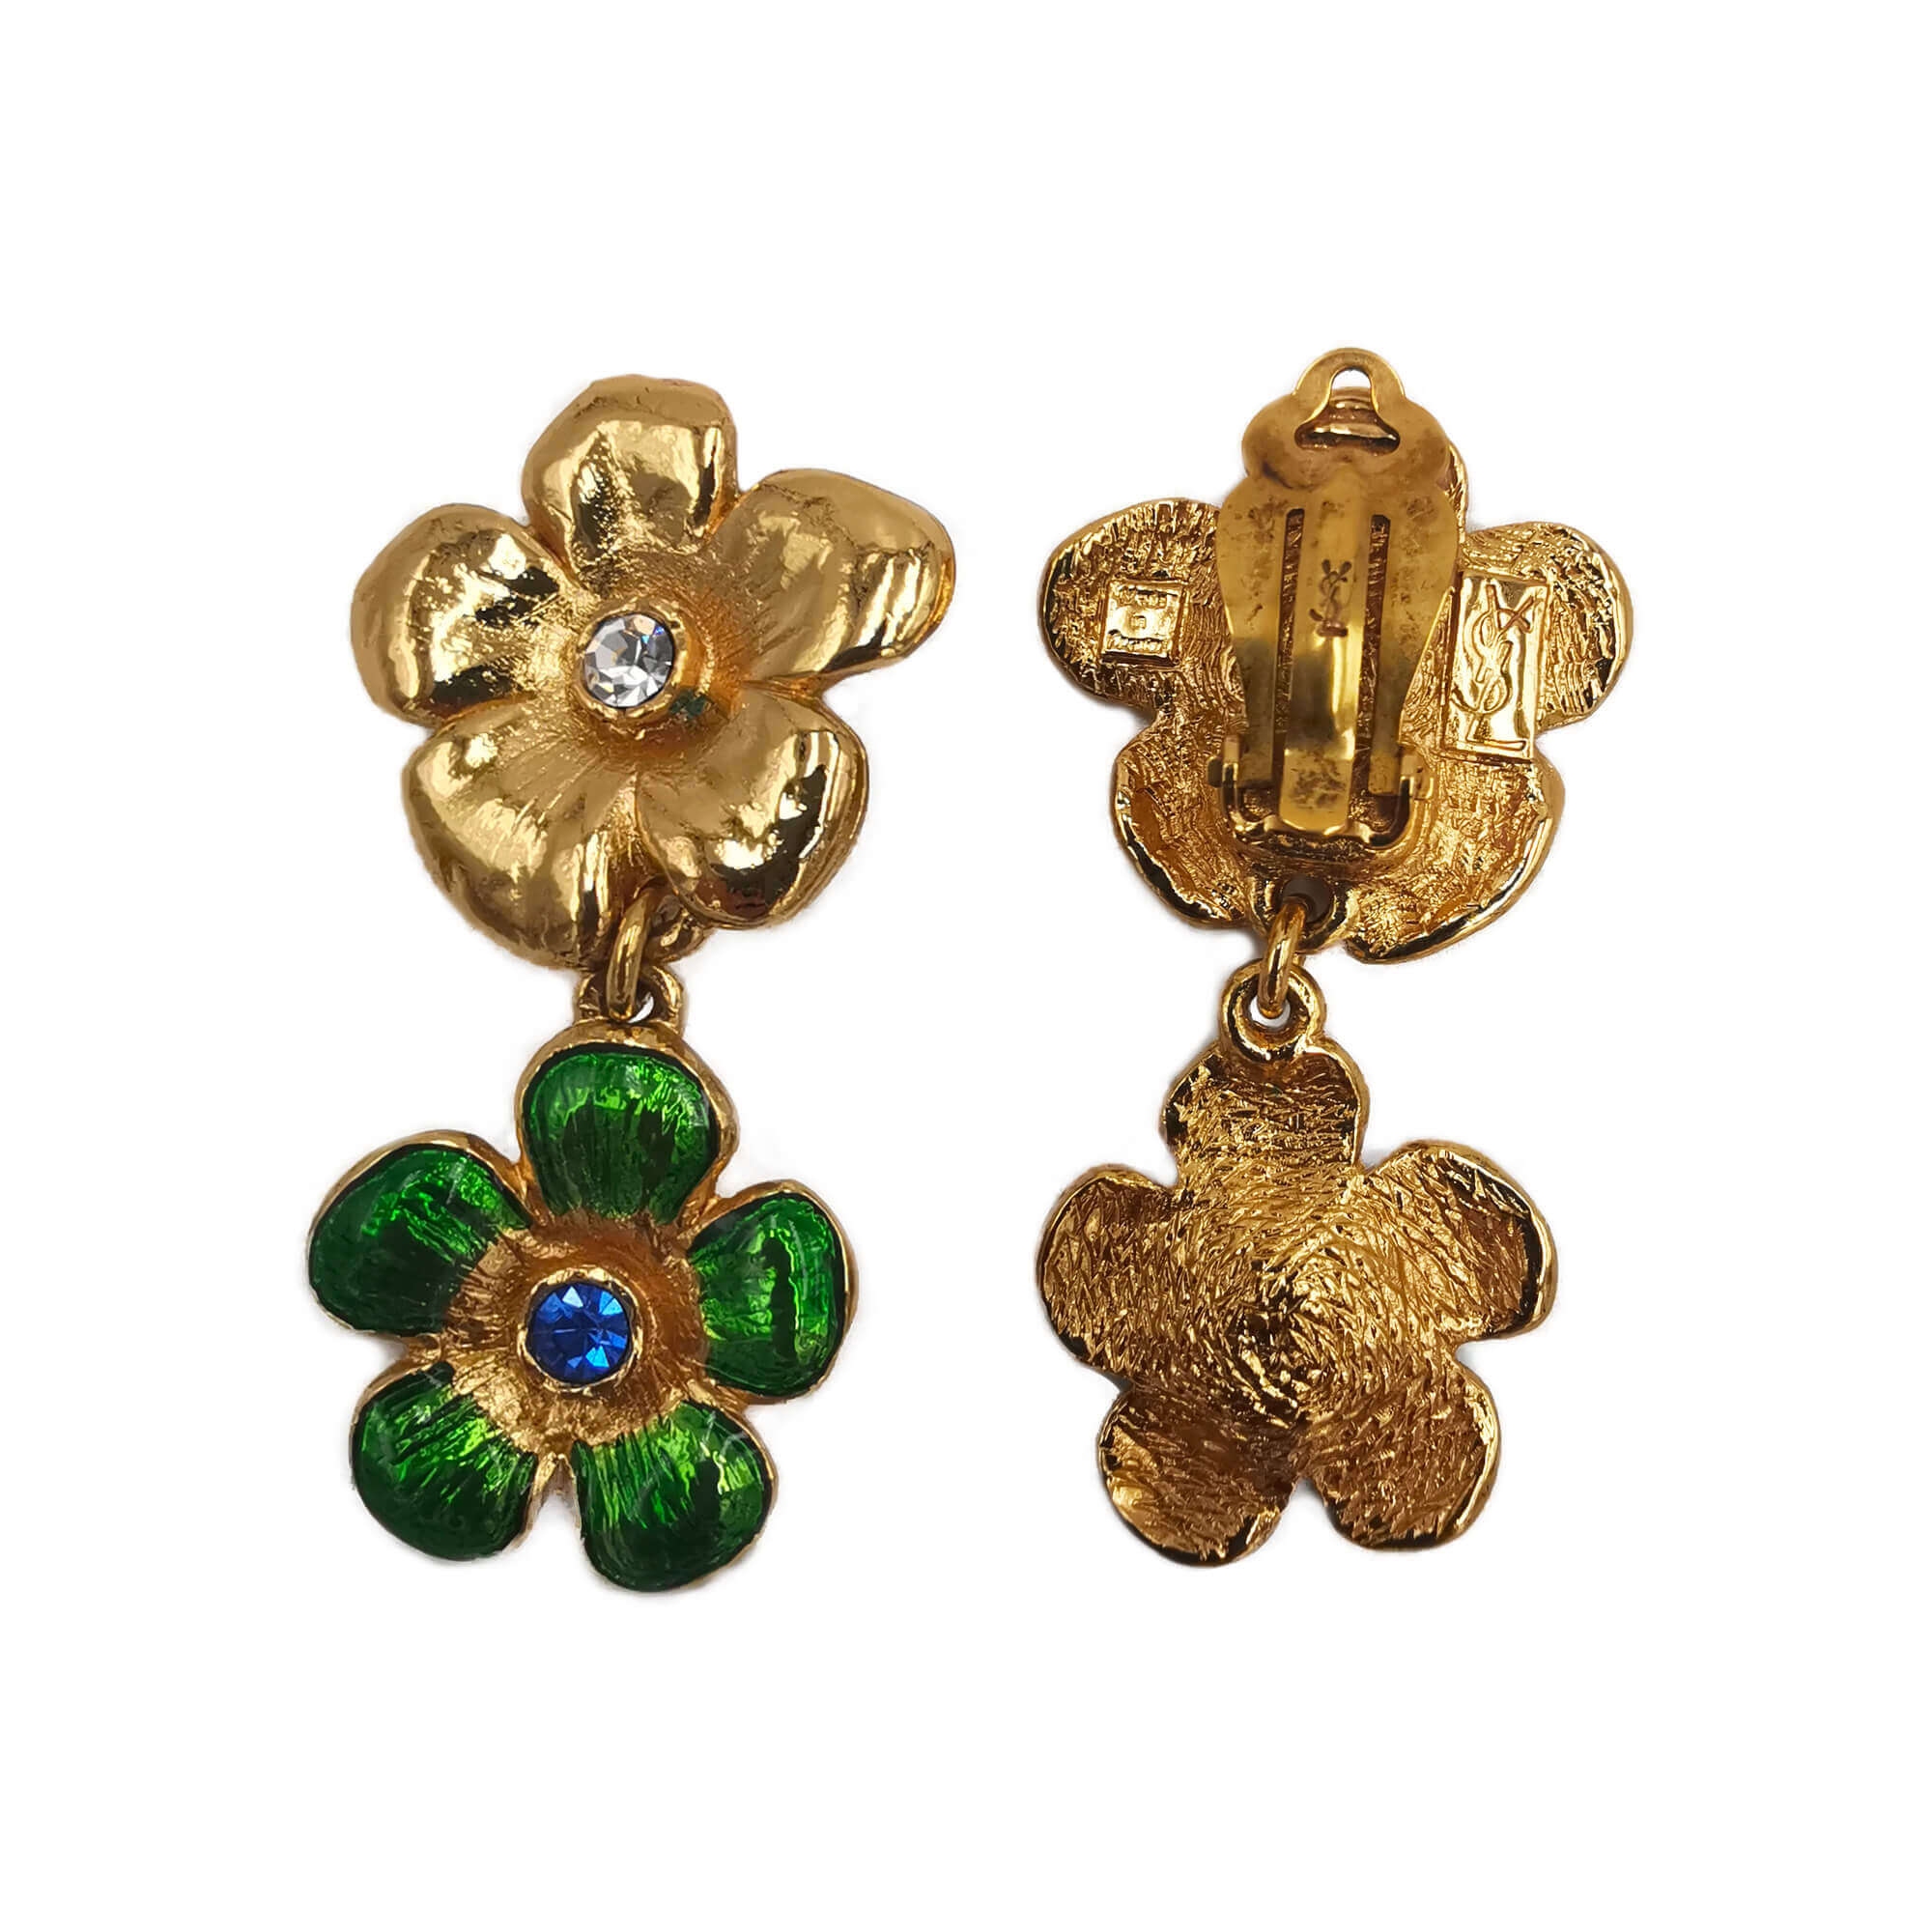 Yves Saint Laurent Flowers Clip Earrings - Bona Tondinelli Bijoux